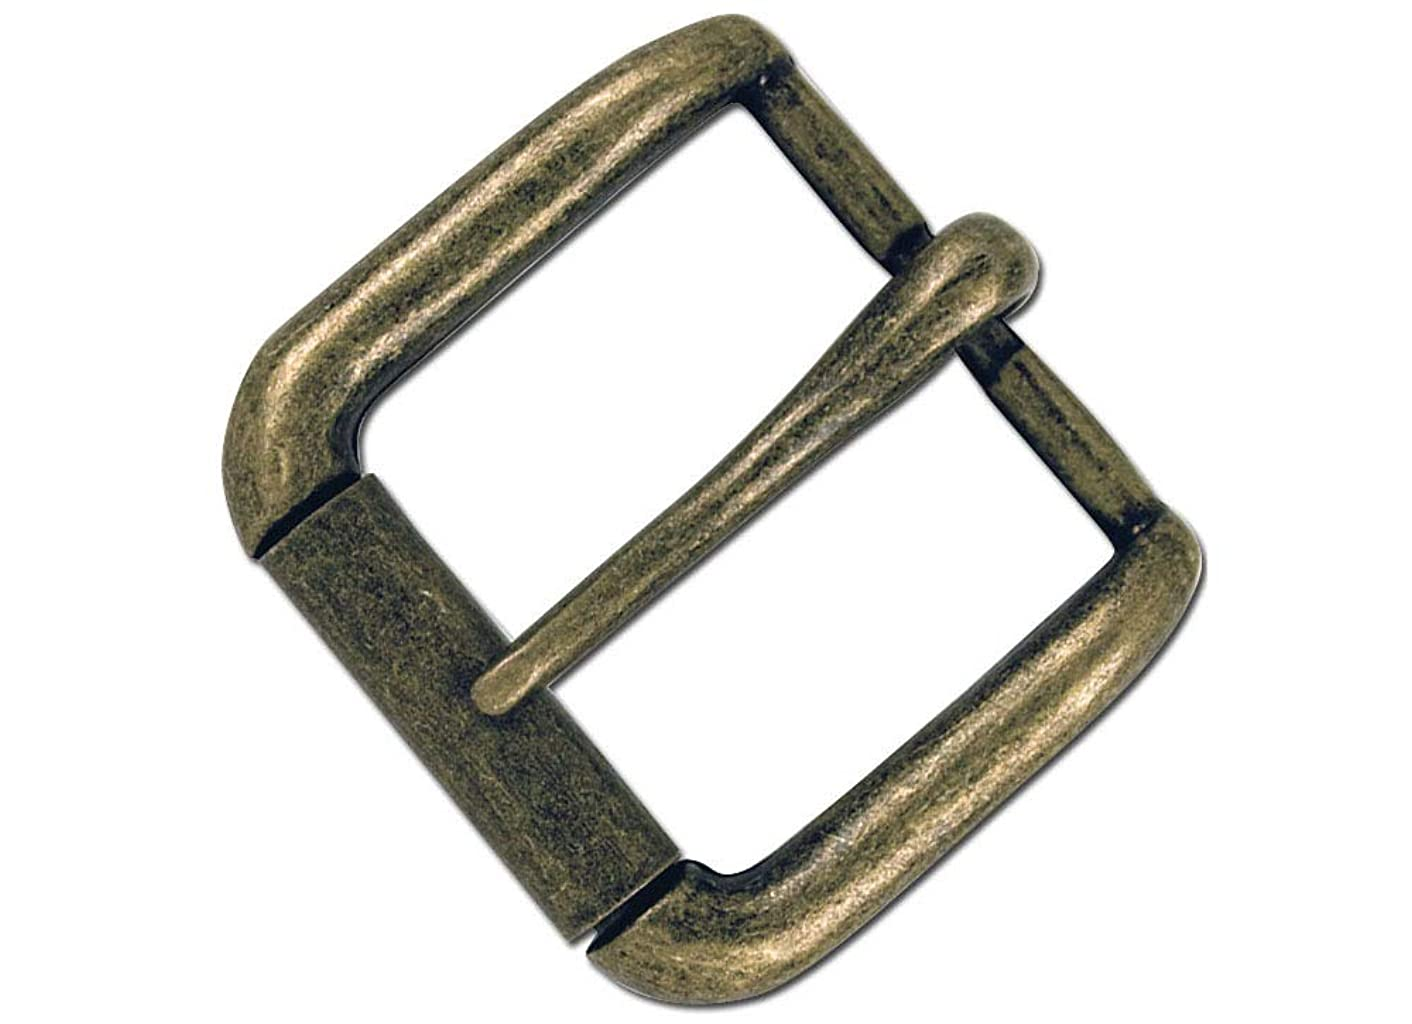 Tandy Leather Napa Buckle 1-1/4